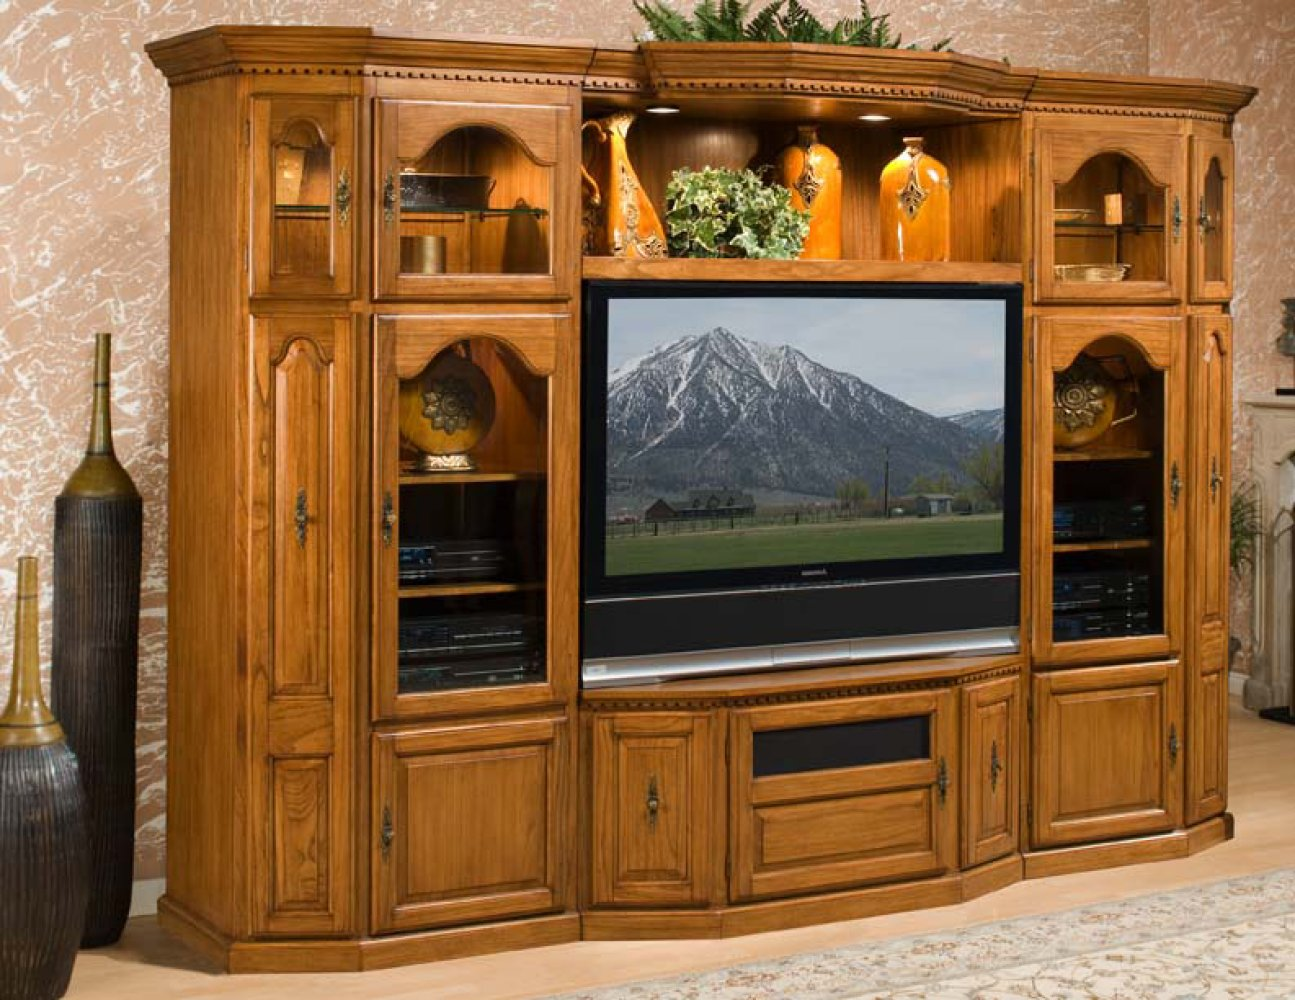 Entertainment center furniture ideas Wooden entertainment center furniture